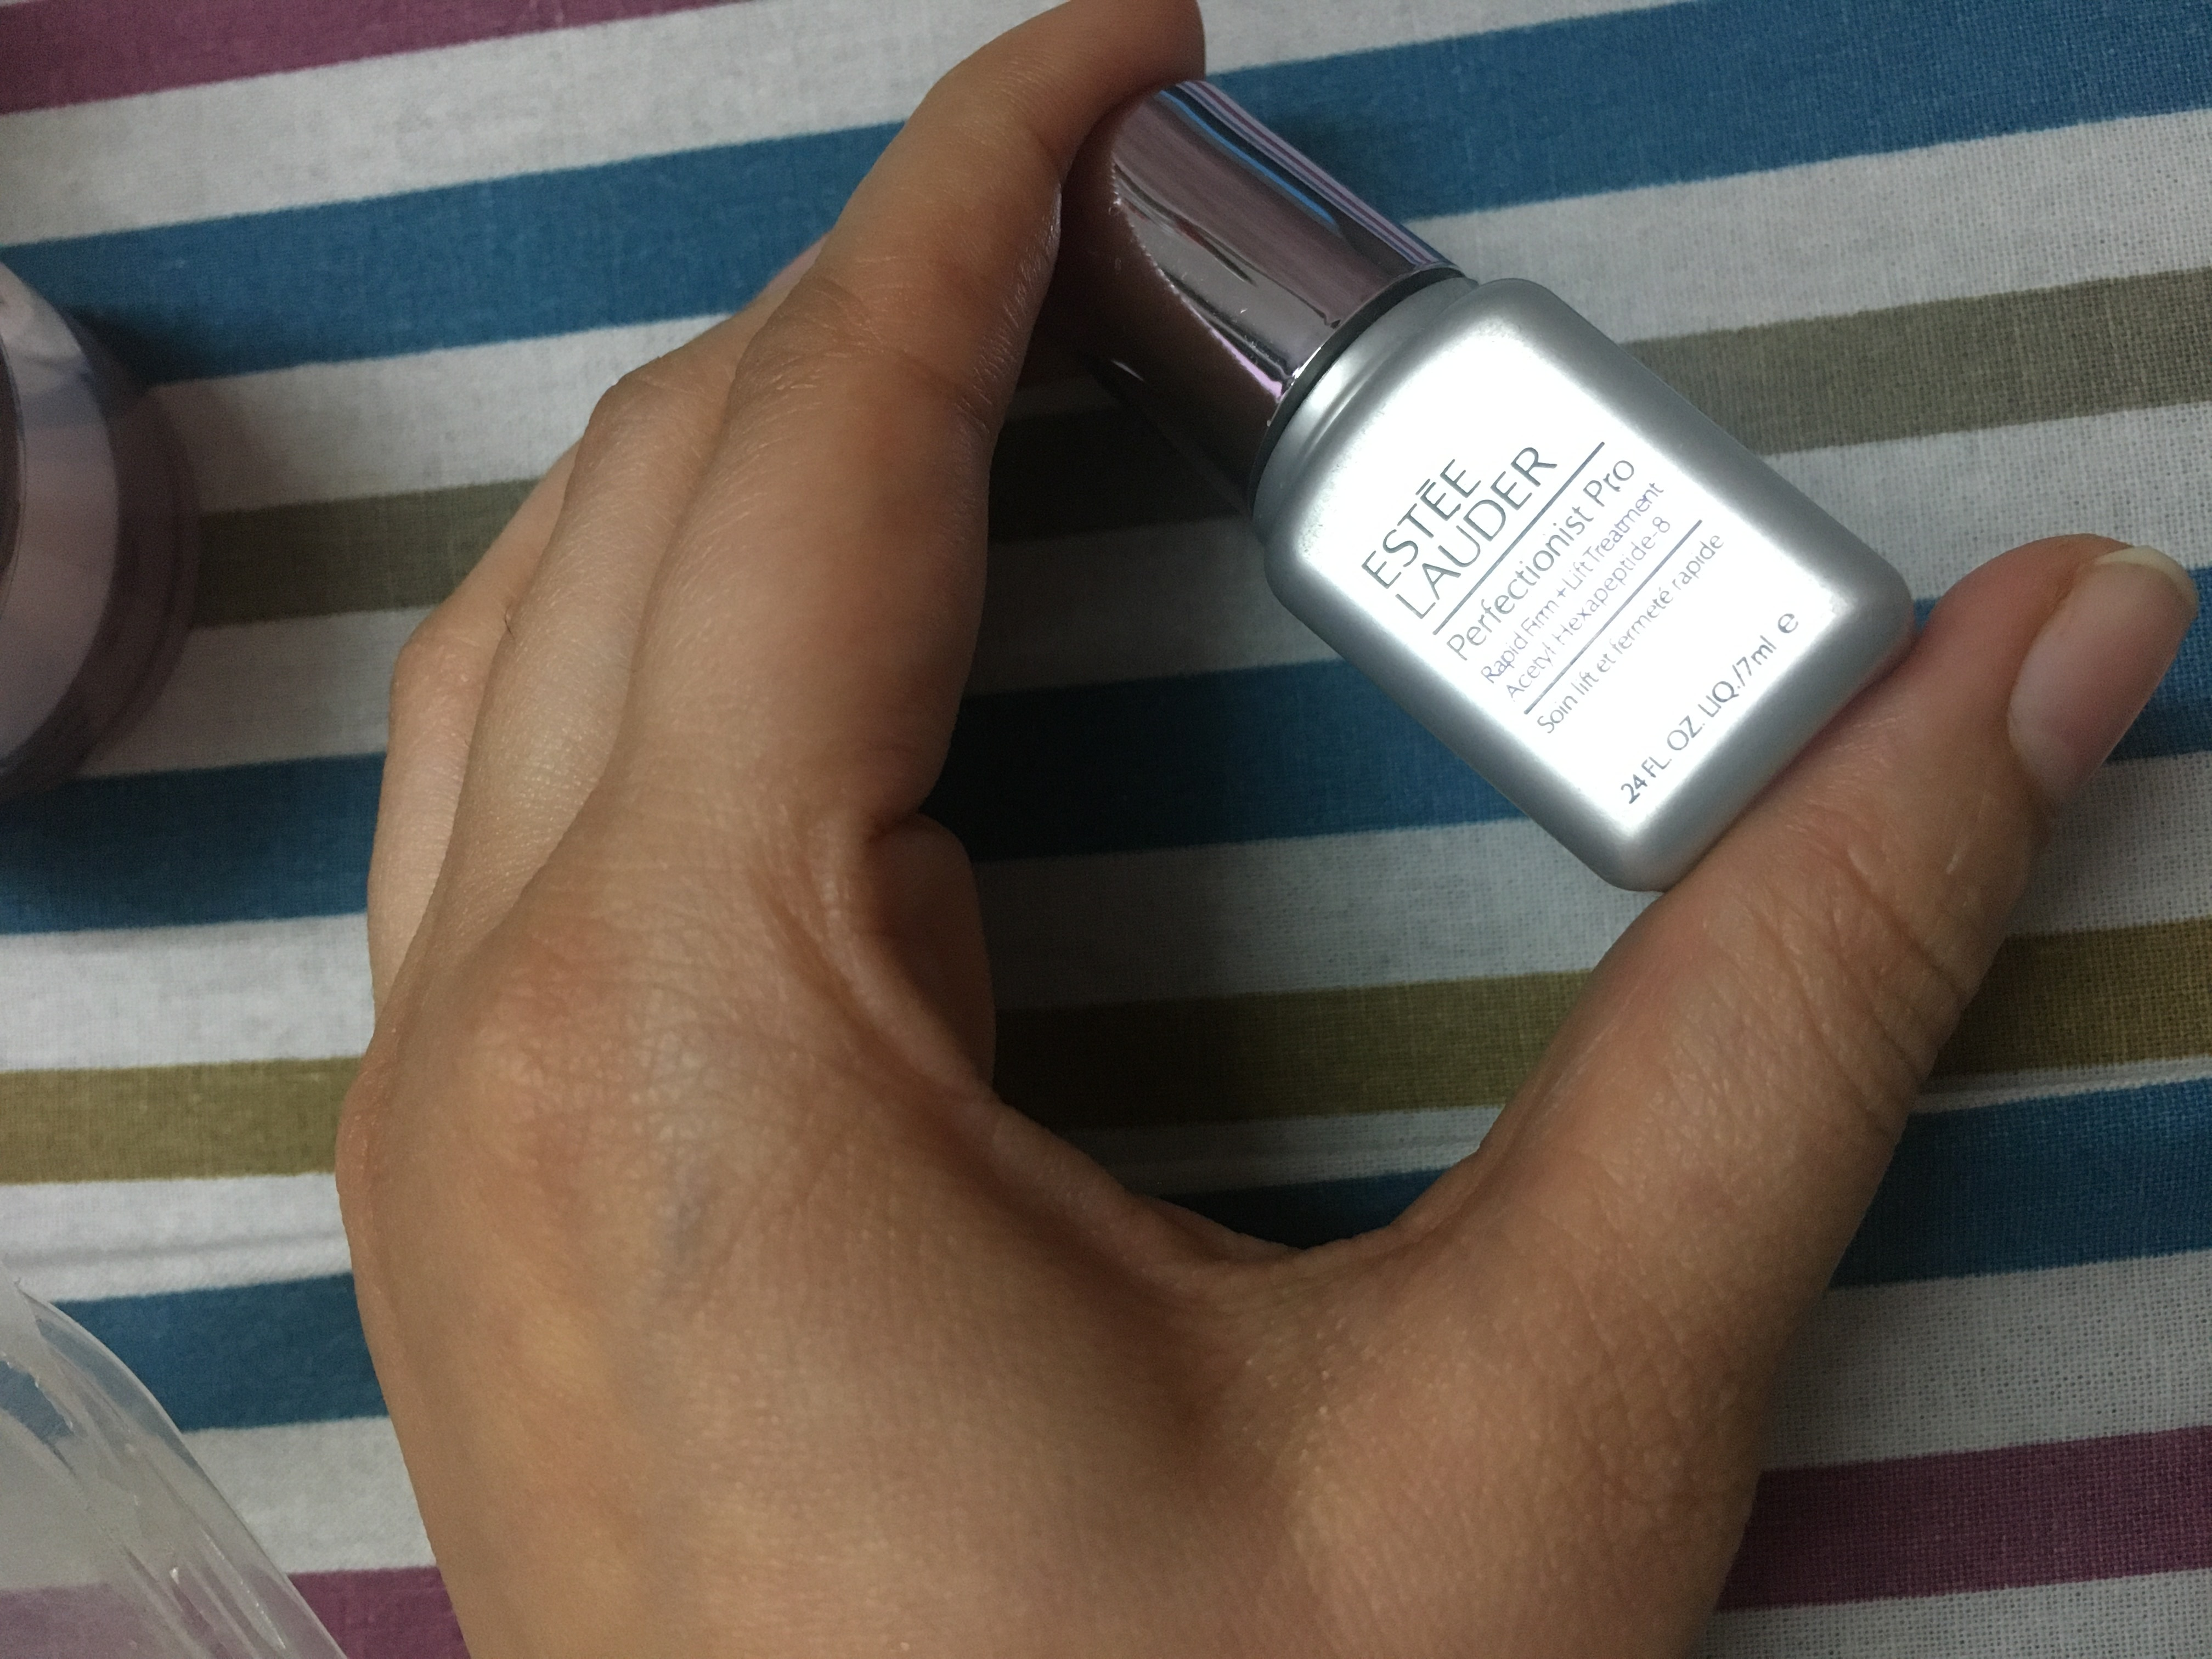 Estee Lauder Clear Difference Advanced Blemish Serum-No blemishes now-By ritikajilka1991